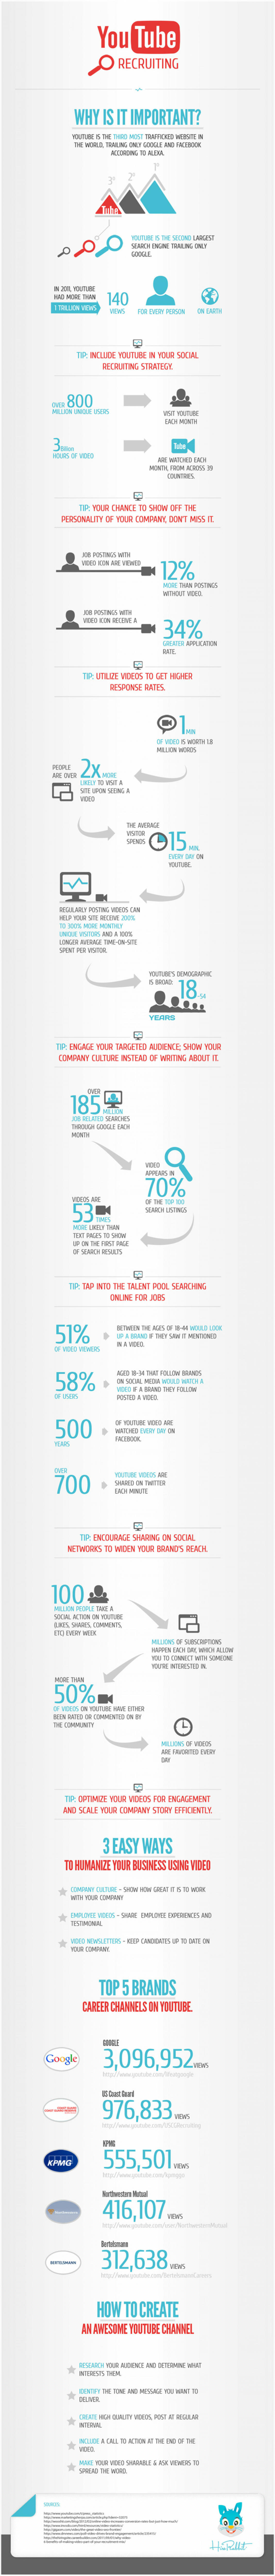 3 Reasons Your Company Should Be Using YouTube For Recruitment  Infographic